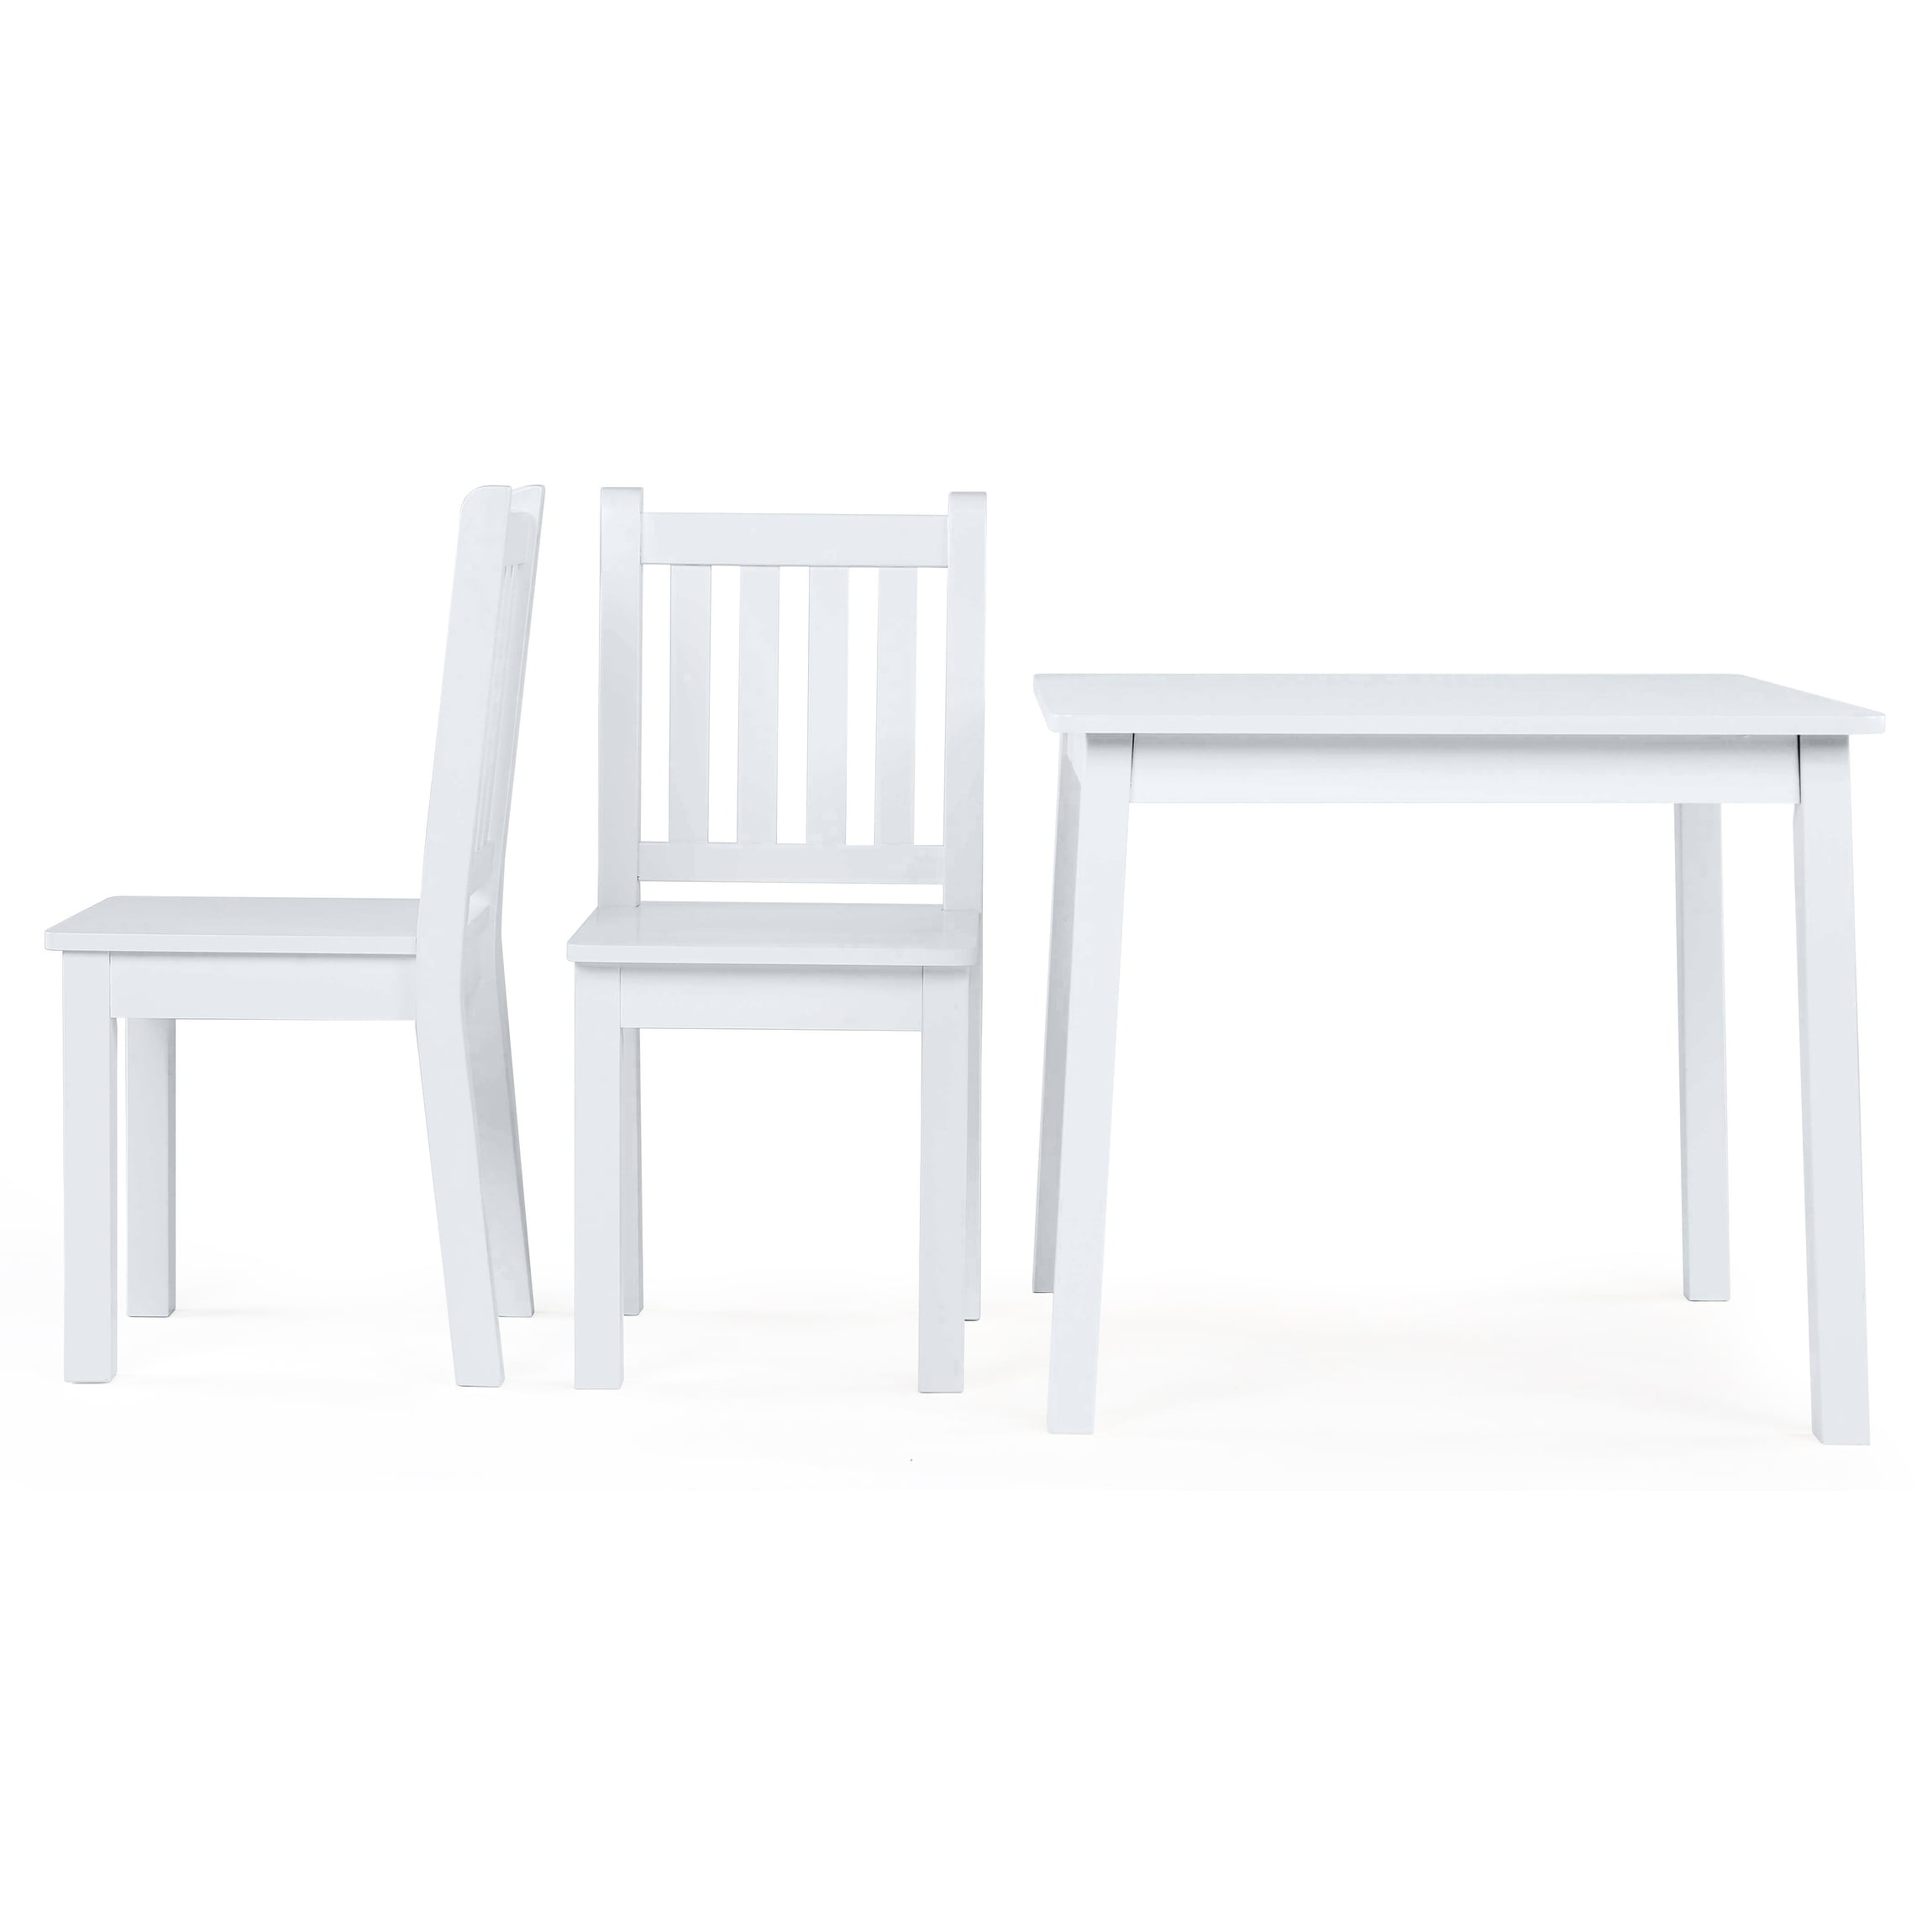 Daylight Collection Kids Large White Wood Table u0026 2 Chairs Set - Free Shipping Today - Overstock - 24794142  sc 1 st  Overstock & Daylight Collection Kids Large White Wood Table u0026 2 Chairs Set ...